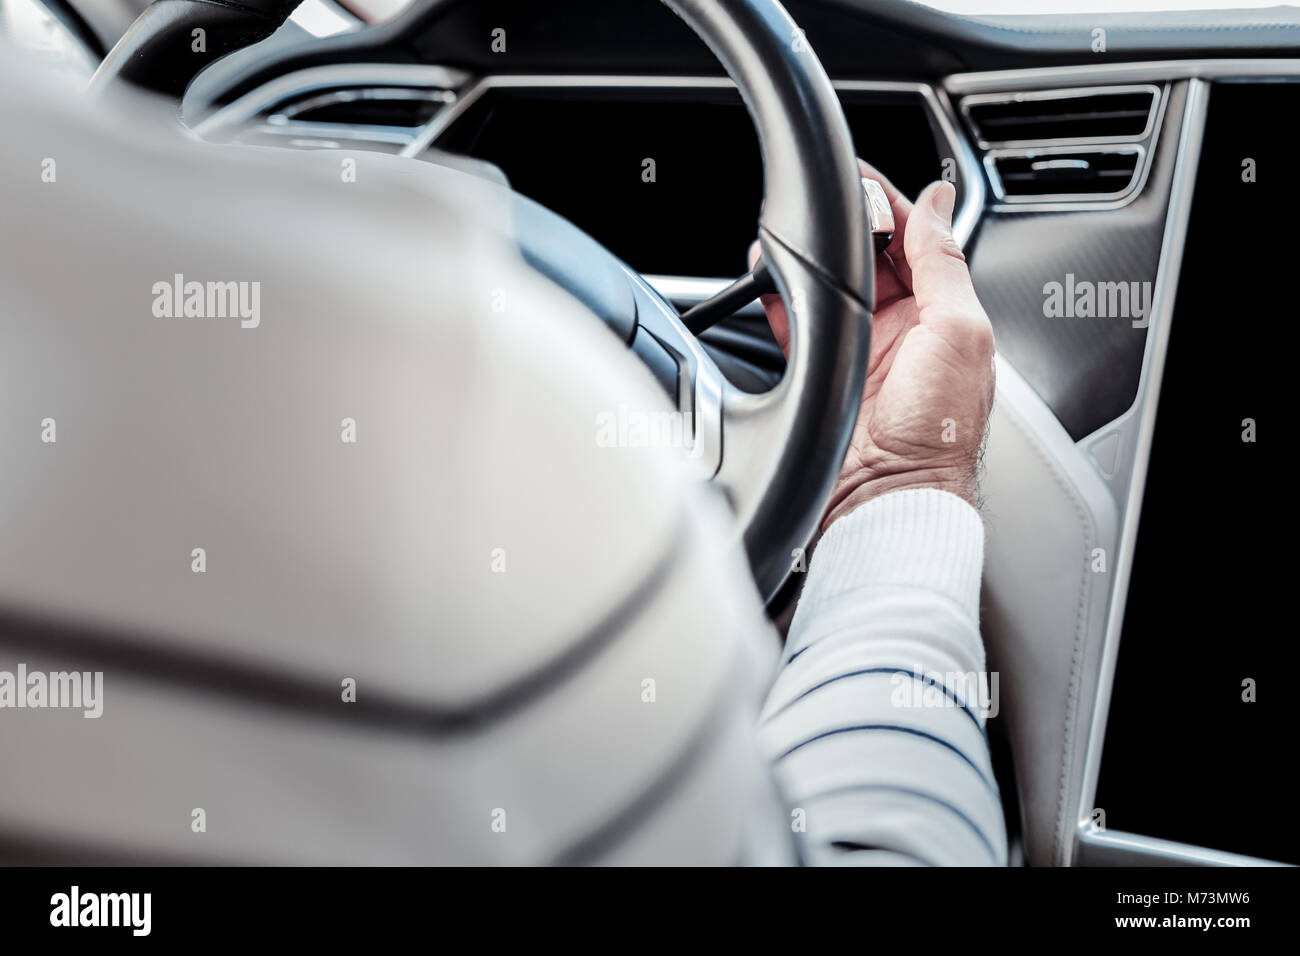 Close up of a driving wheel - Stock Image